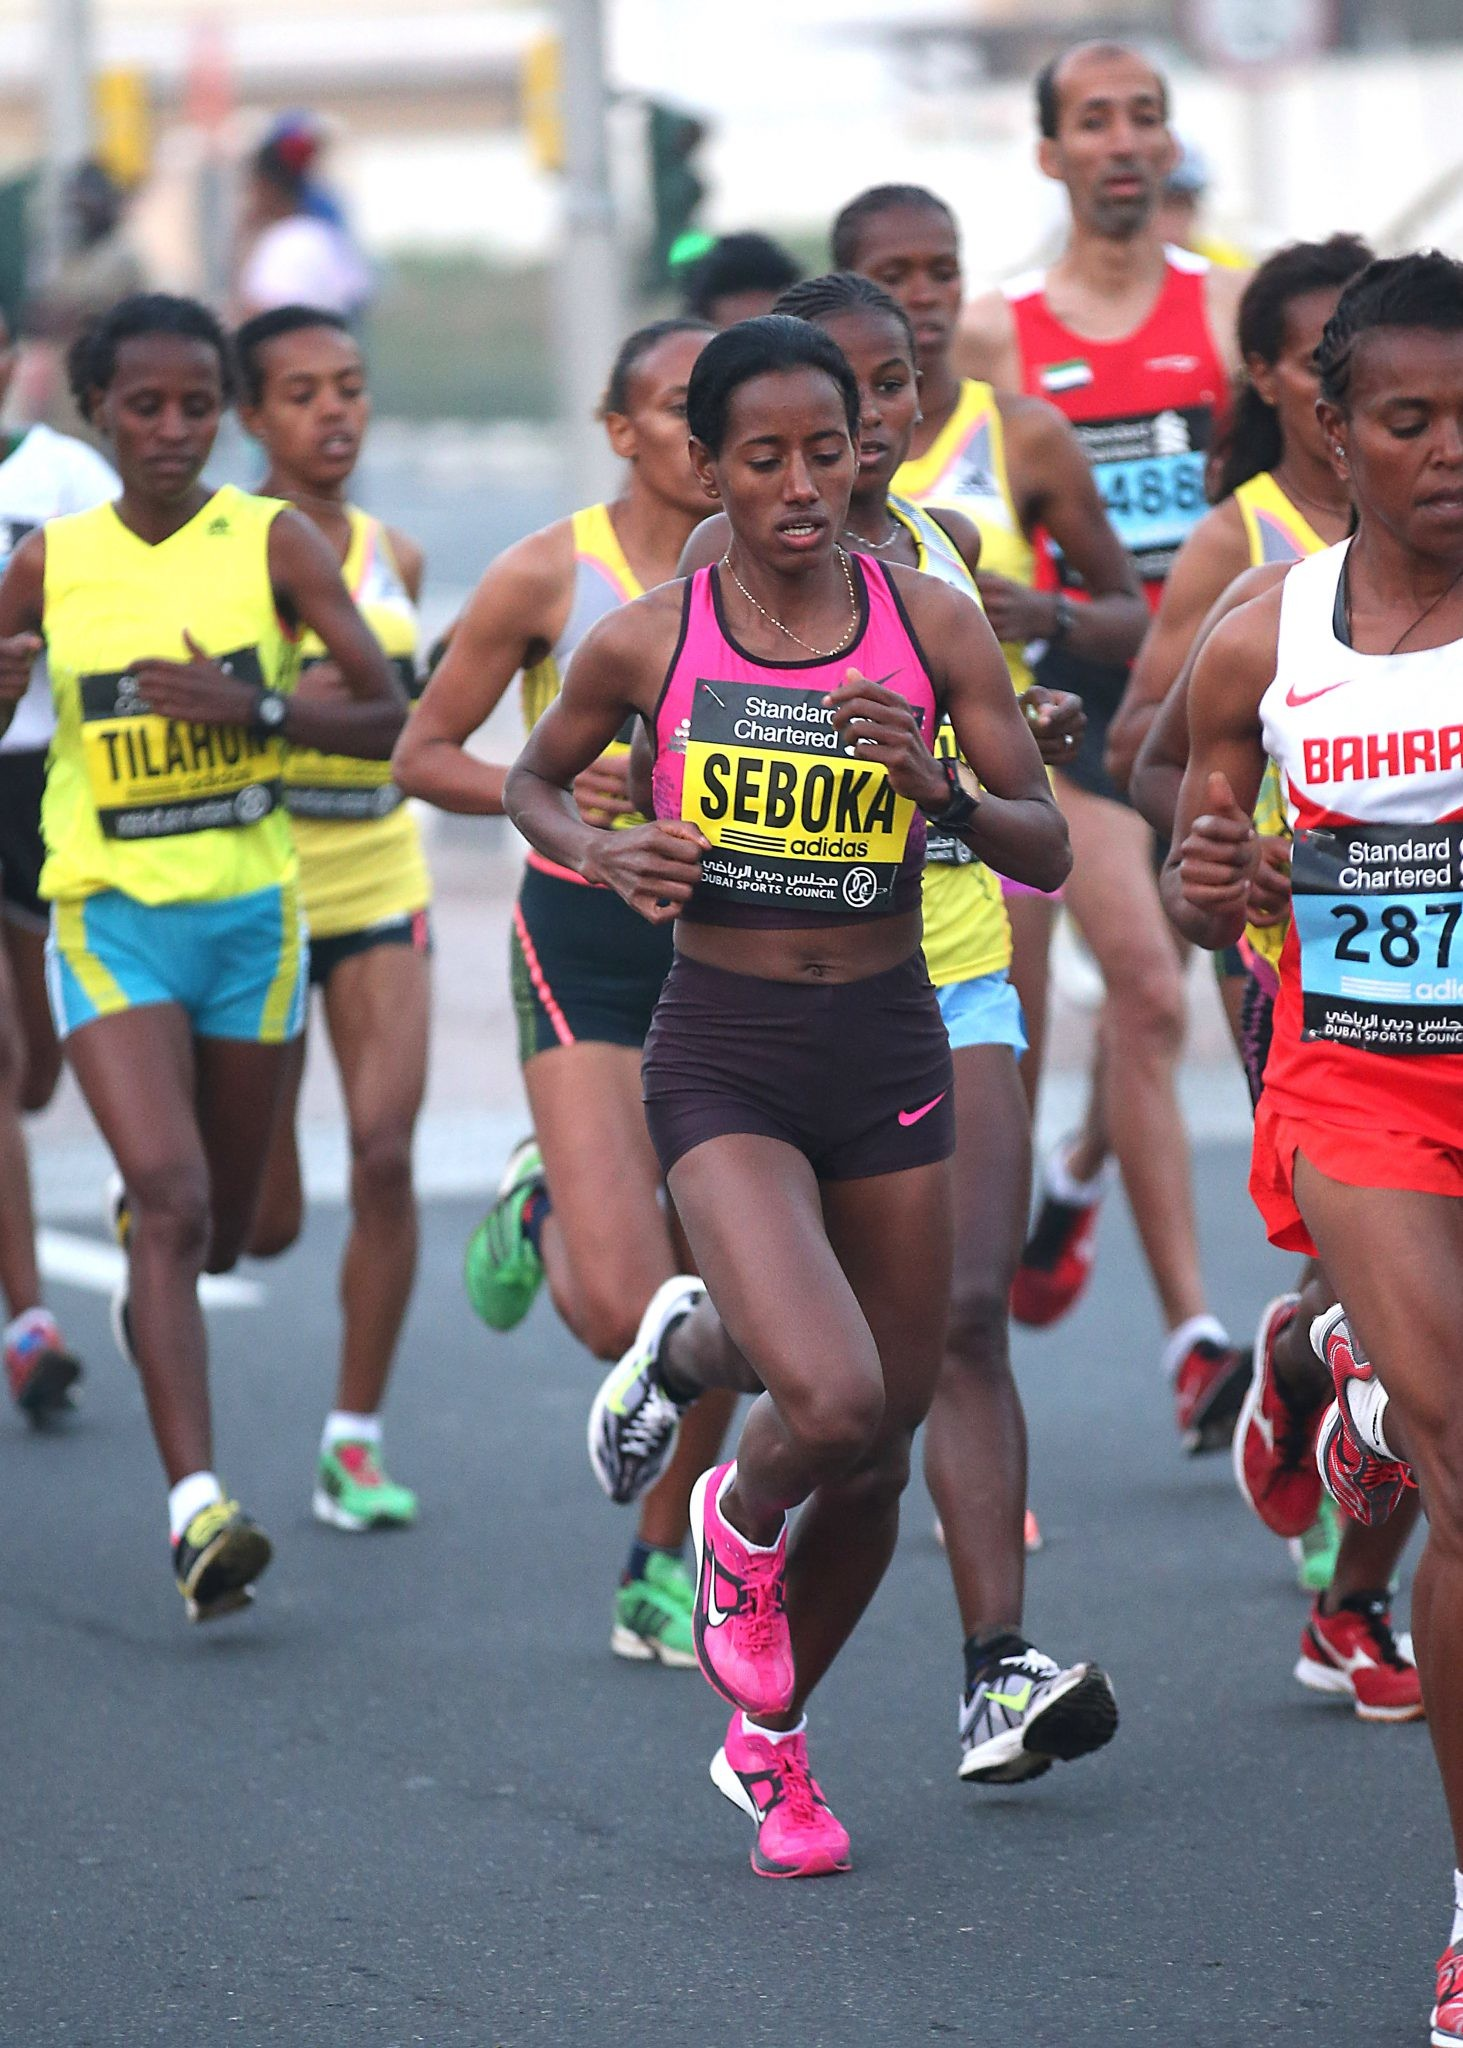 Ethiopia's Mulu Seboka will take on the in-form Celestine Chepchirchir of Kenya at the Guangzhou Marathon, a World Athletics Gold Label road race, on Sunday